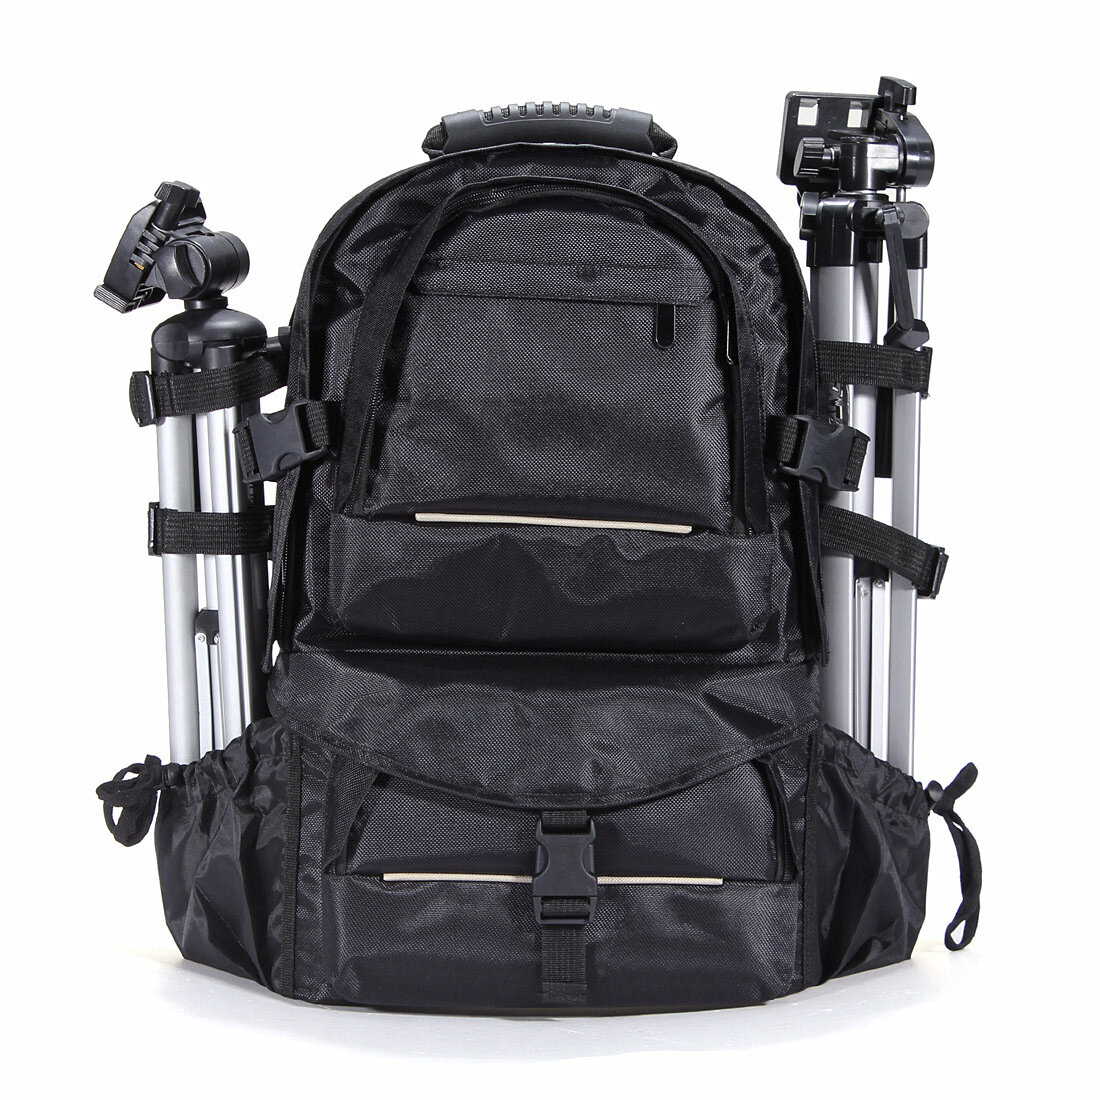 Waterproof Nylon Camera Backpack Bag With Rain Cover For Canon Nikon ... 74bc08448ba3d